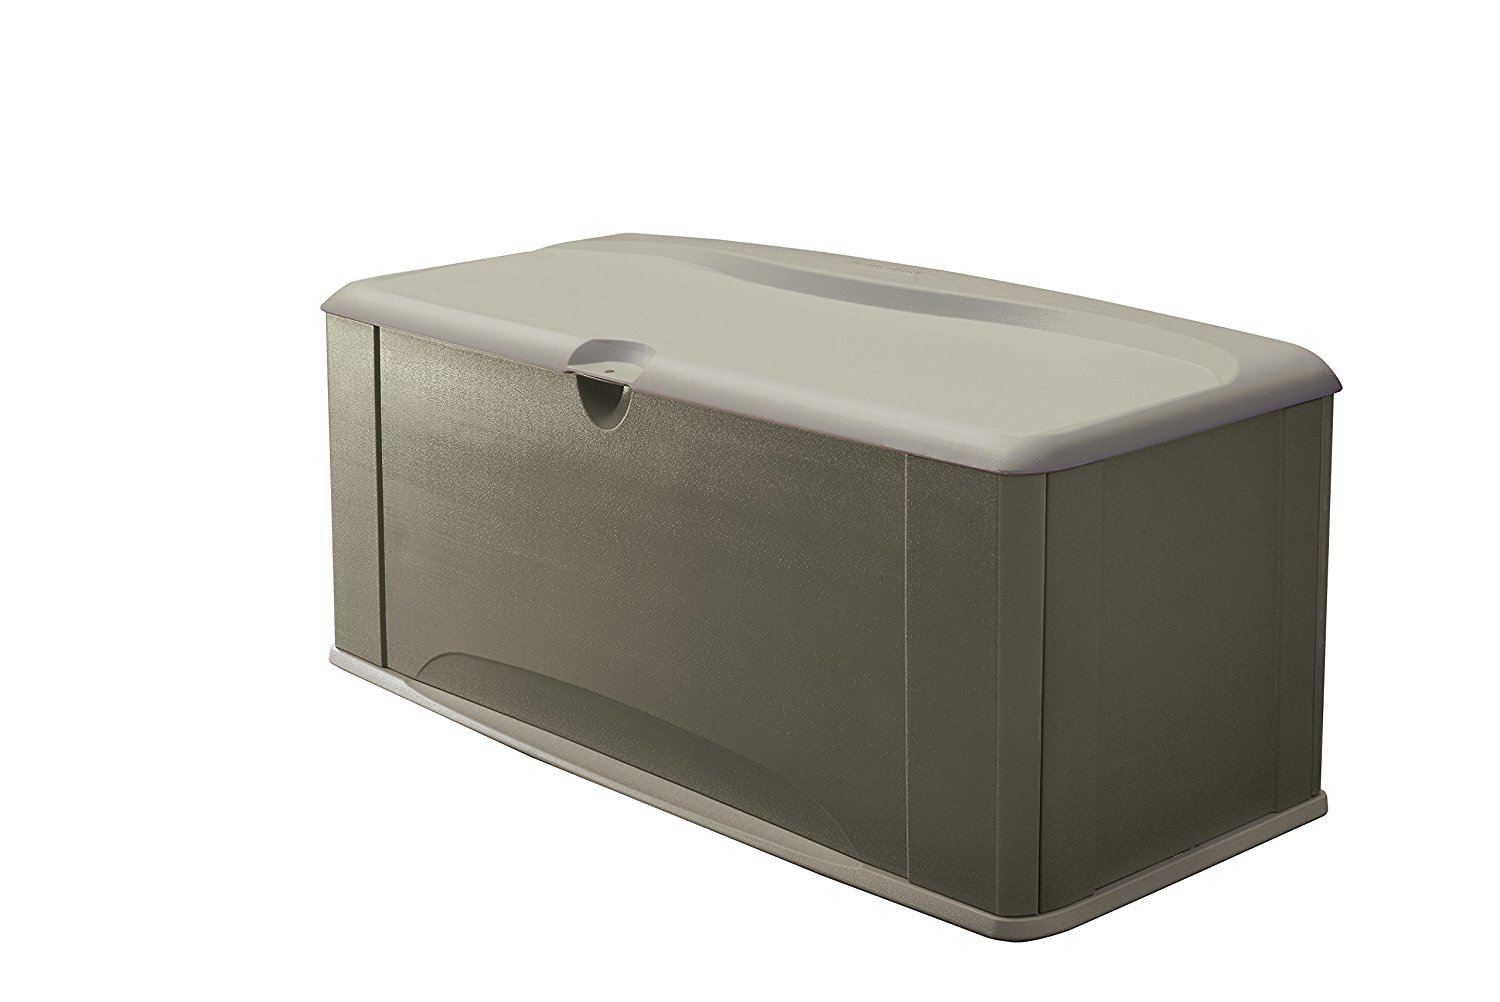 Rubbermaid Deck Box Storage with Seat – Available in 3 sizes